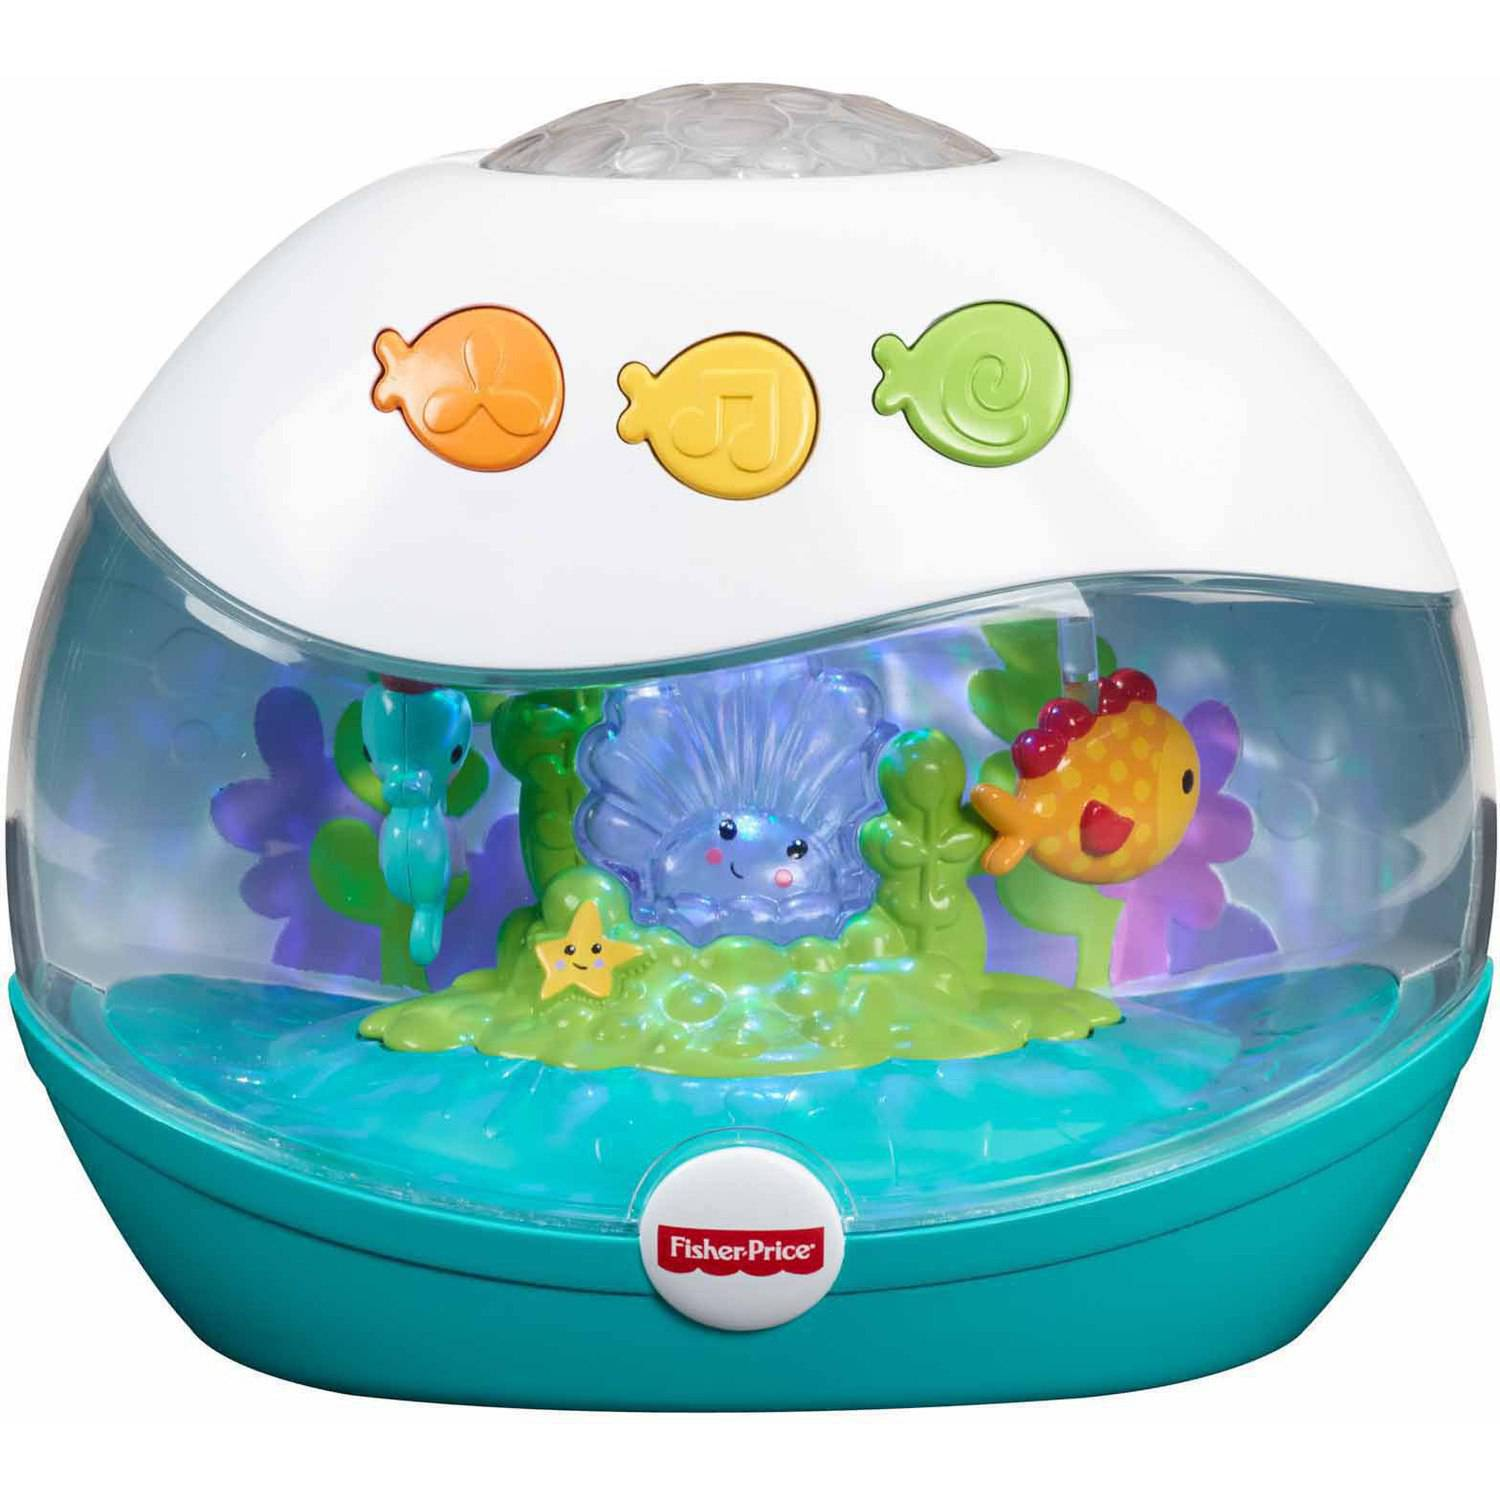 Fisher-Price Calming Seas Projection Soother - Walmart.com